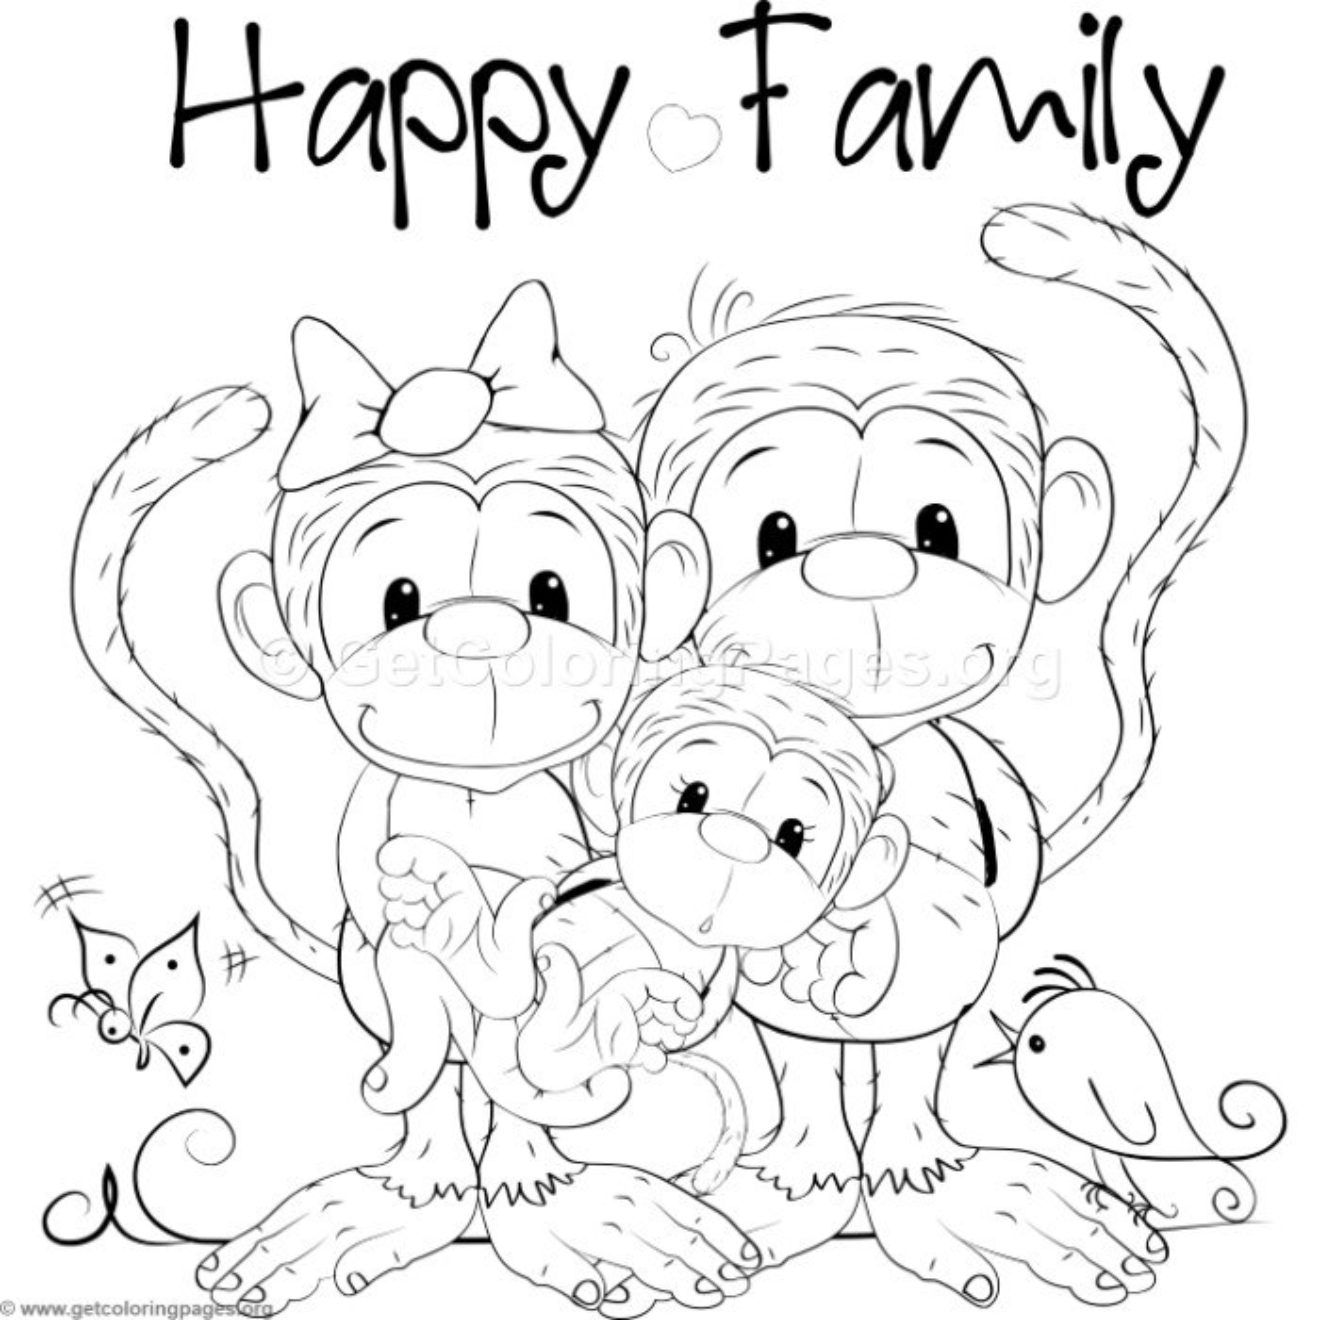 Cute Monkey 7 Coloring Pages Monkey Coloring Pages Cute Coloring Pages Coloring Pages